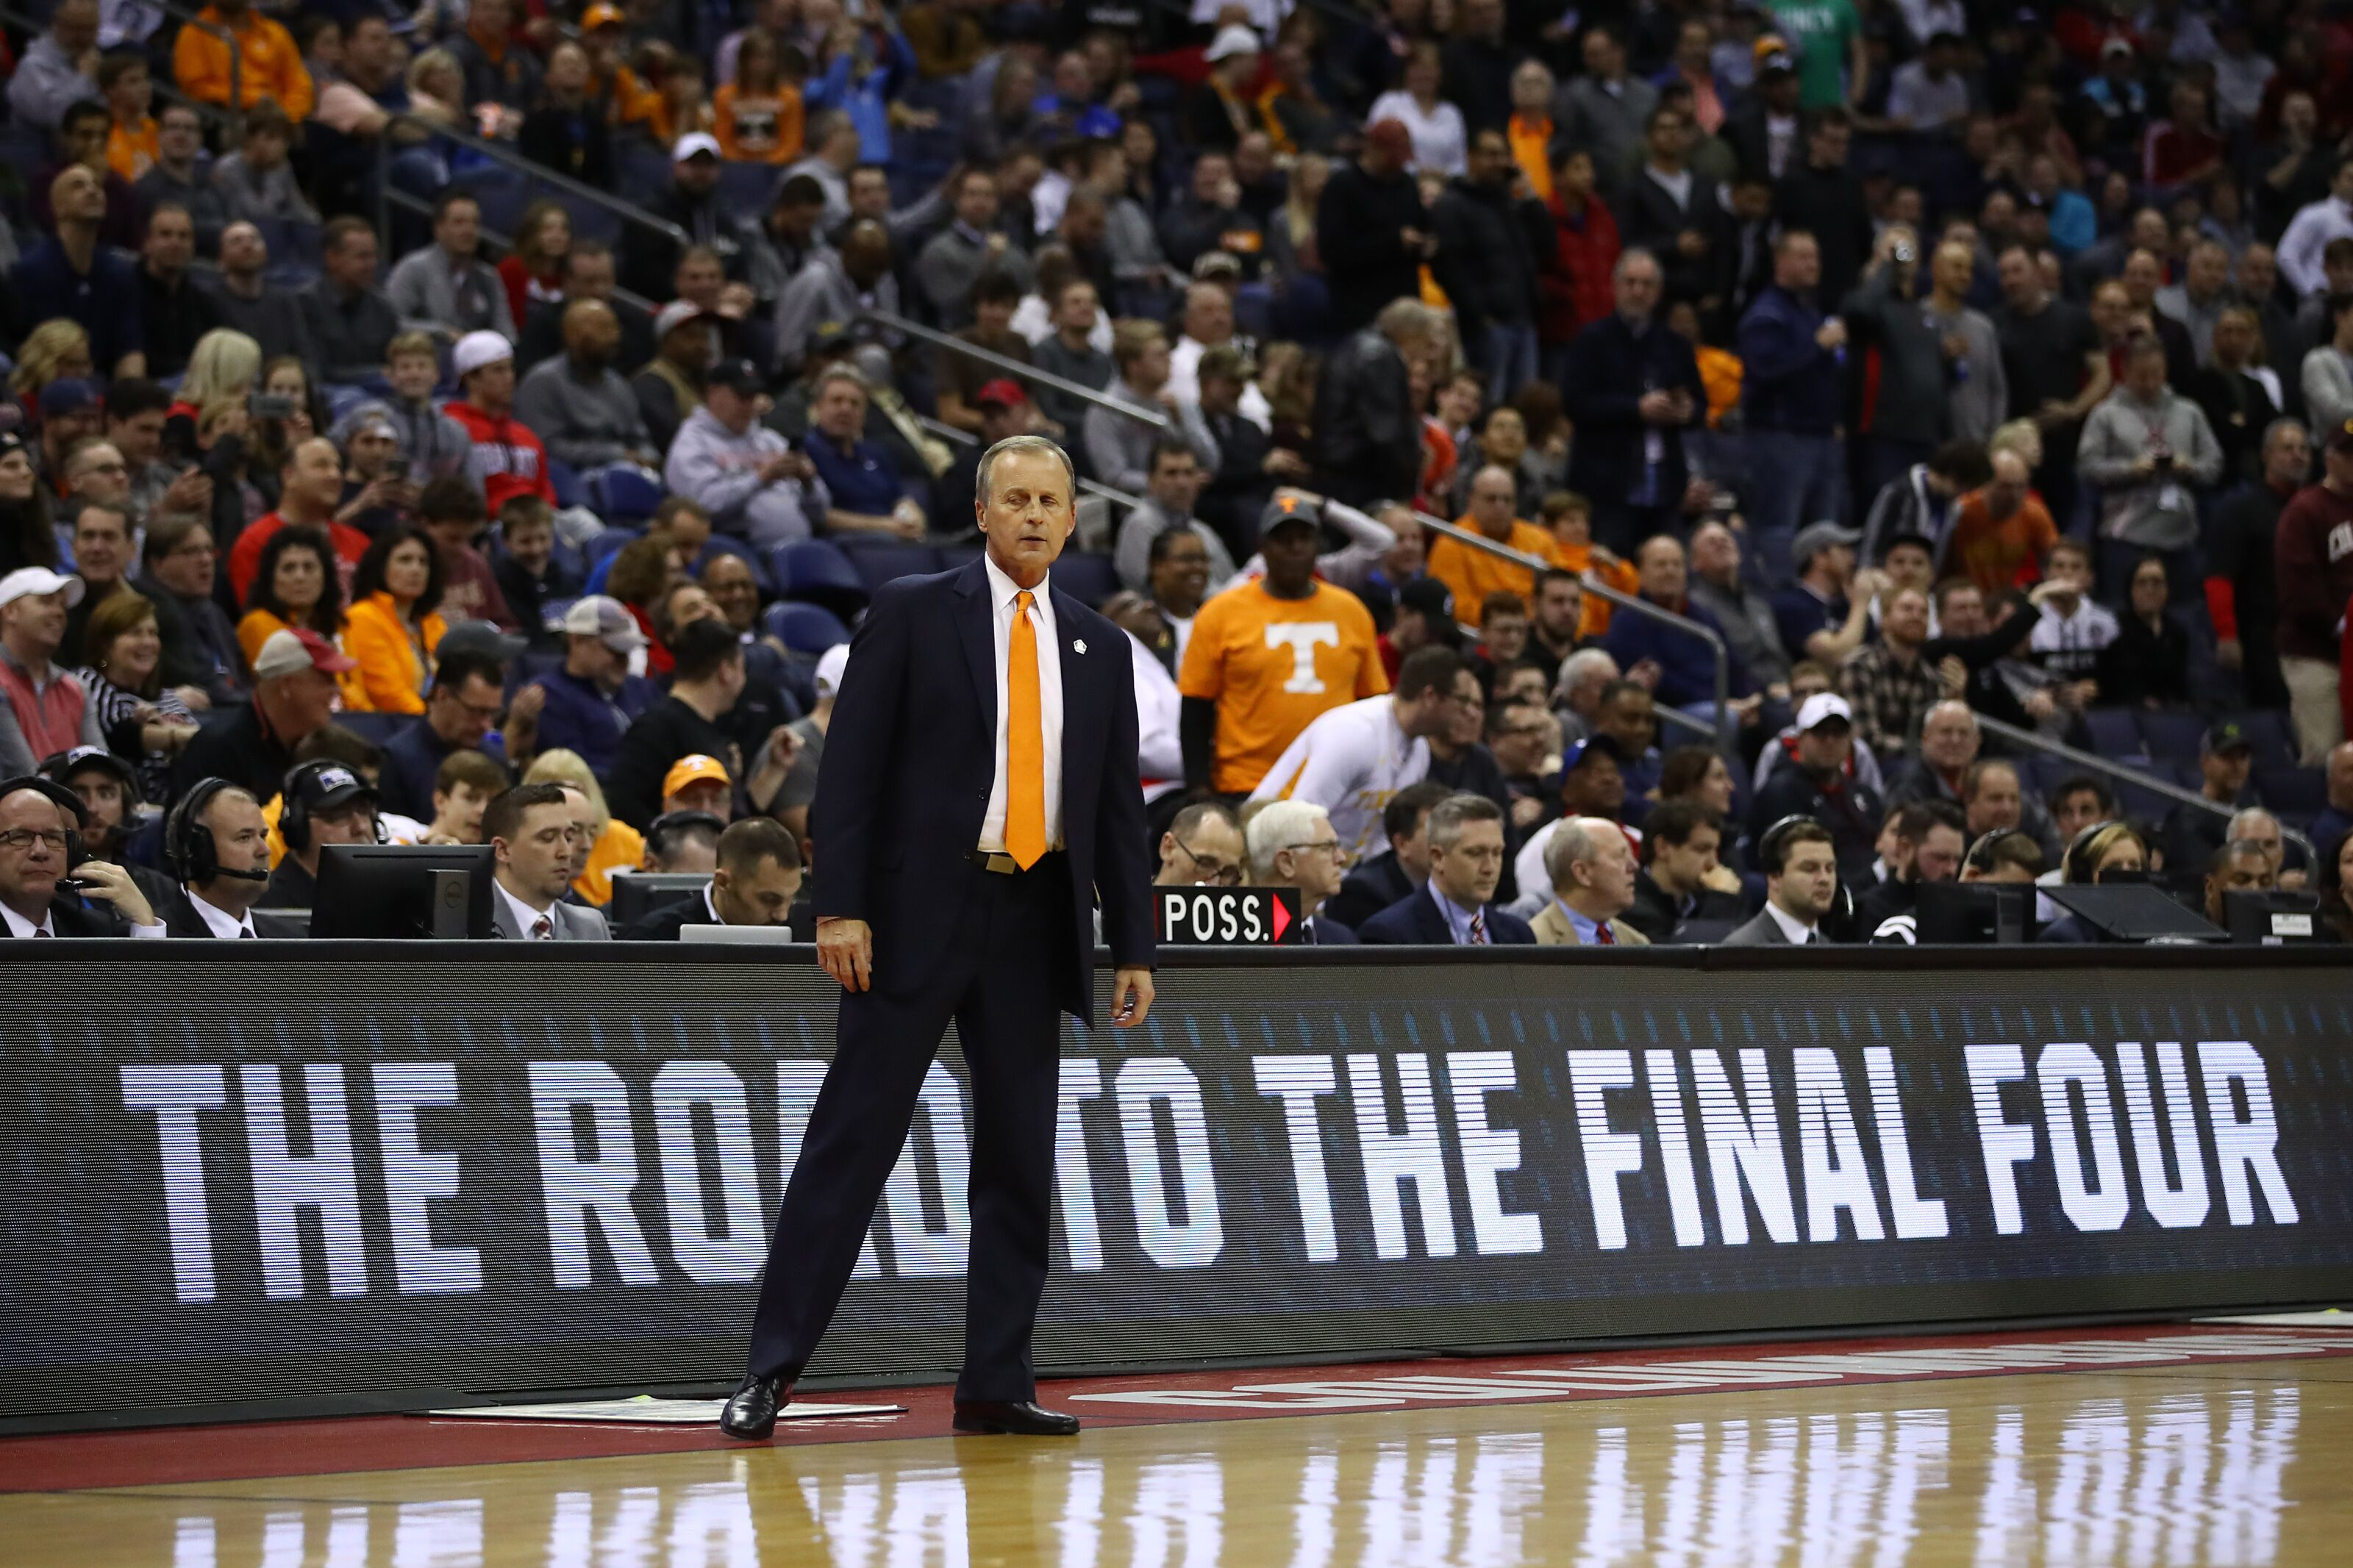 Tennessee basketball: Memphis Tigers No. 1 recruiting class puts pressure on Vols